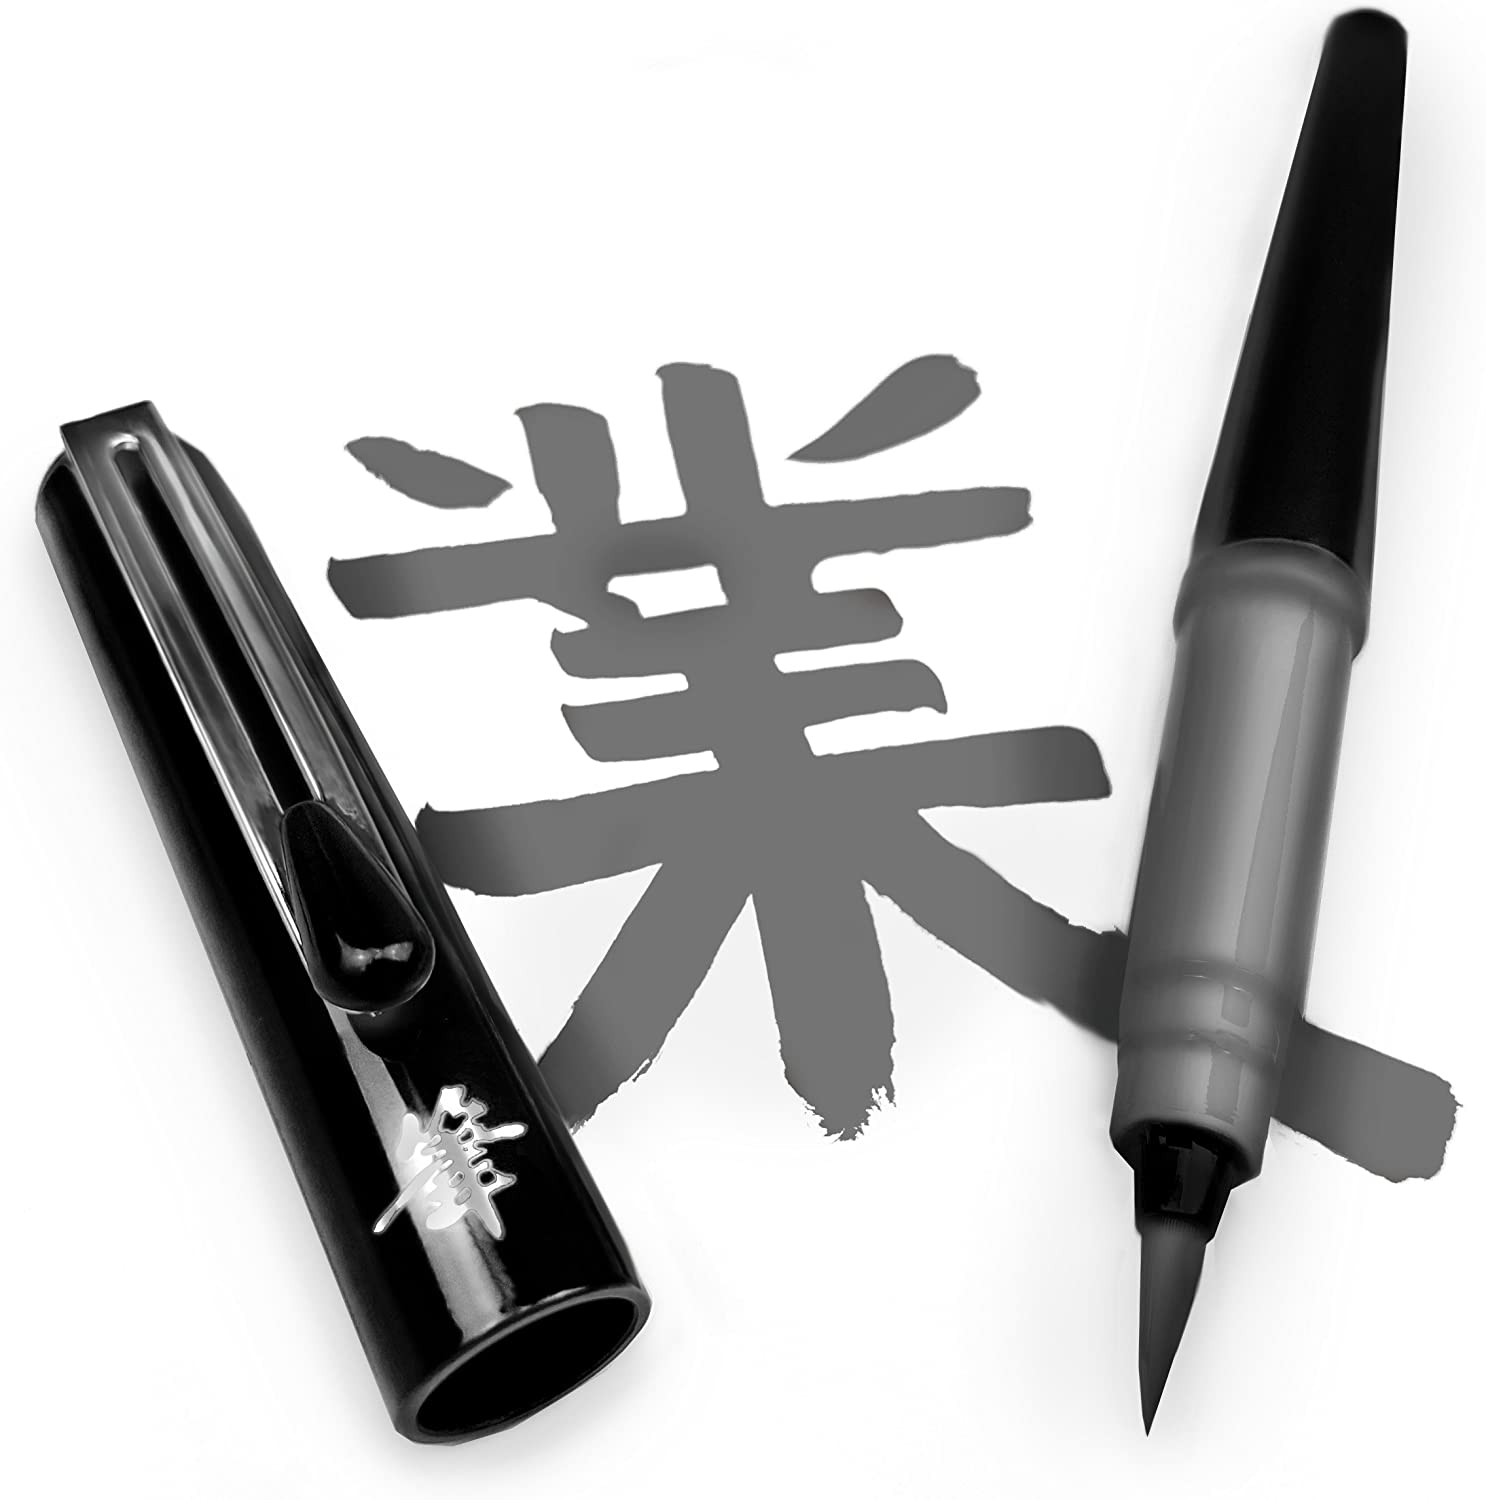 Pentel Refillable Pocket Year-end annual account Brush Pen - Gray 2 with Ink Cartridges Max 57% OFF